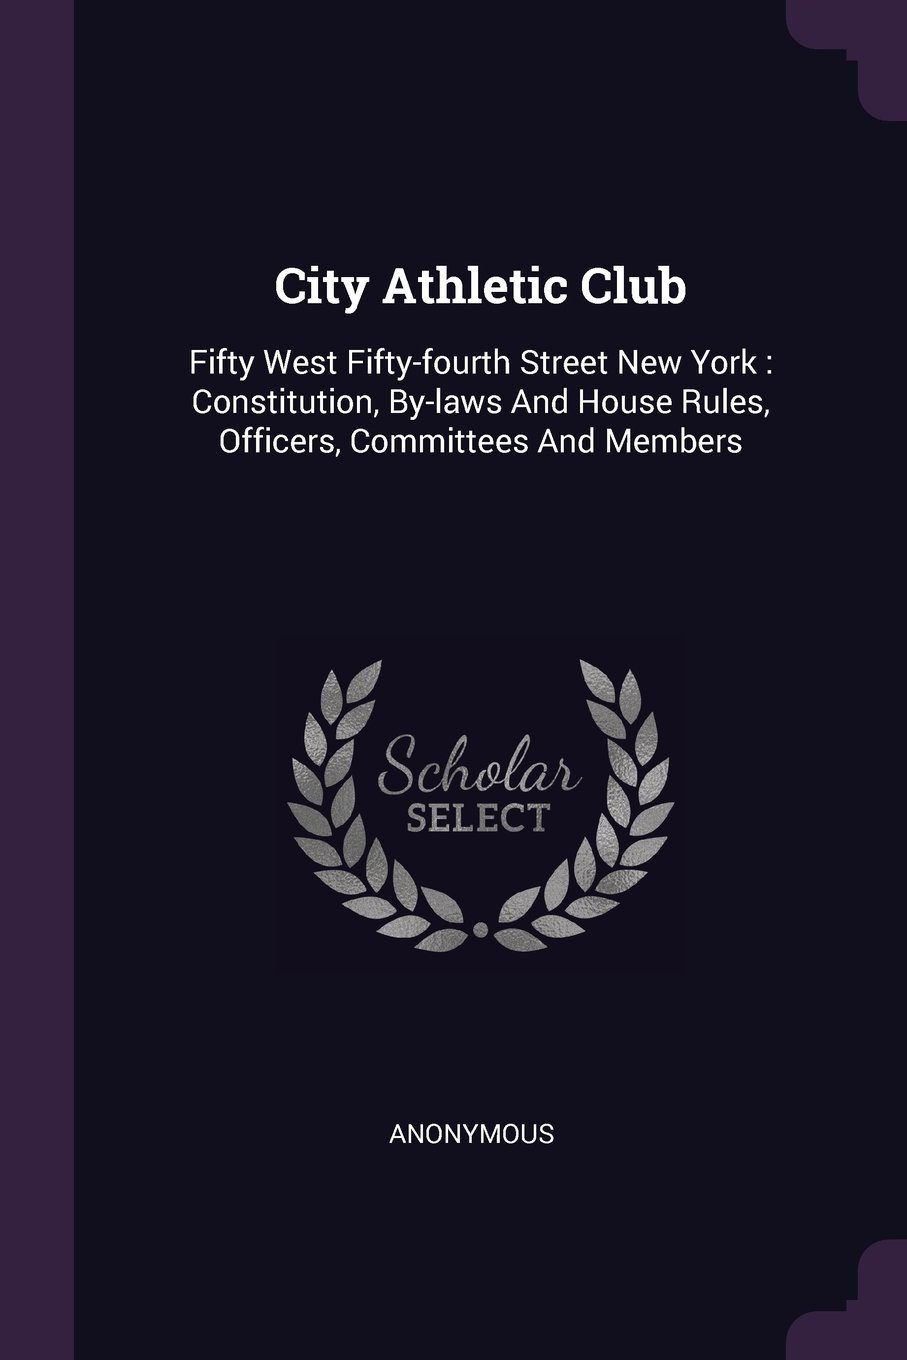 Download City Athletic Club: Fifty West Fifty-fourth Street New York : Constitution, By-laws And House Rules, Officers, Committees And Members PDF